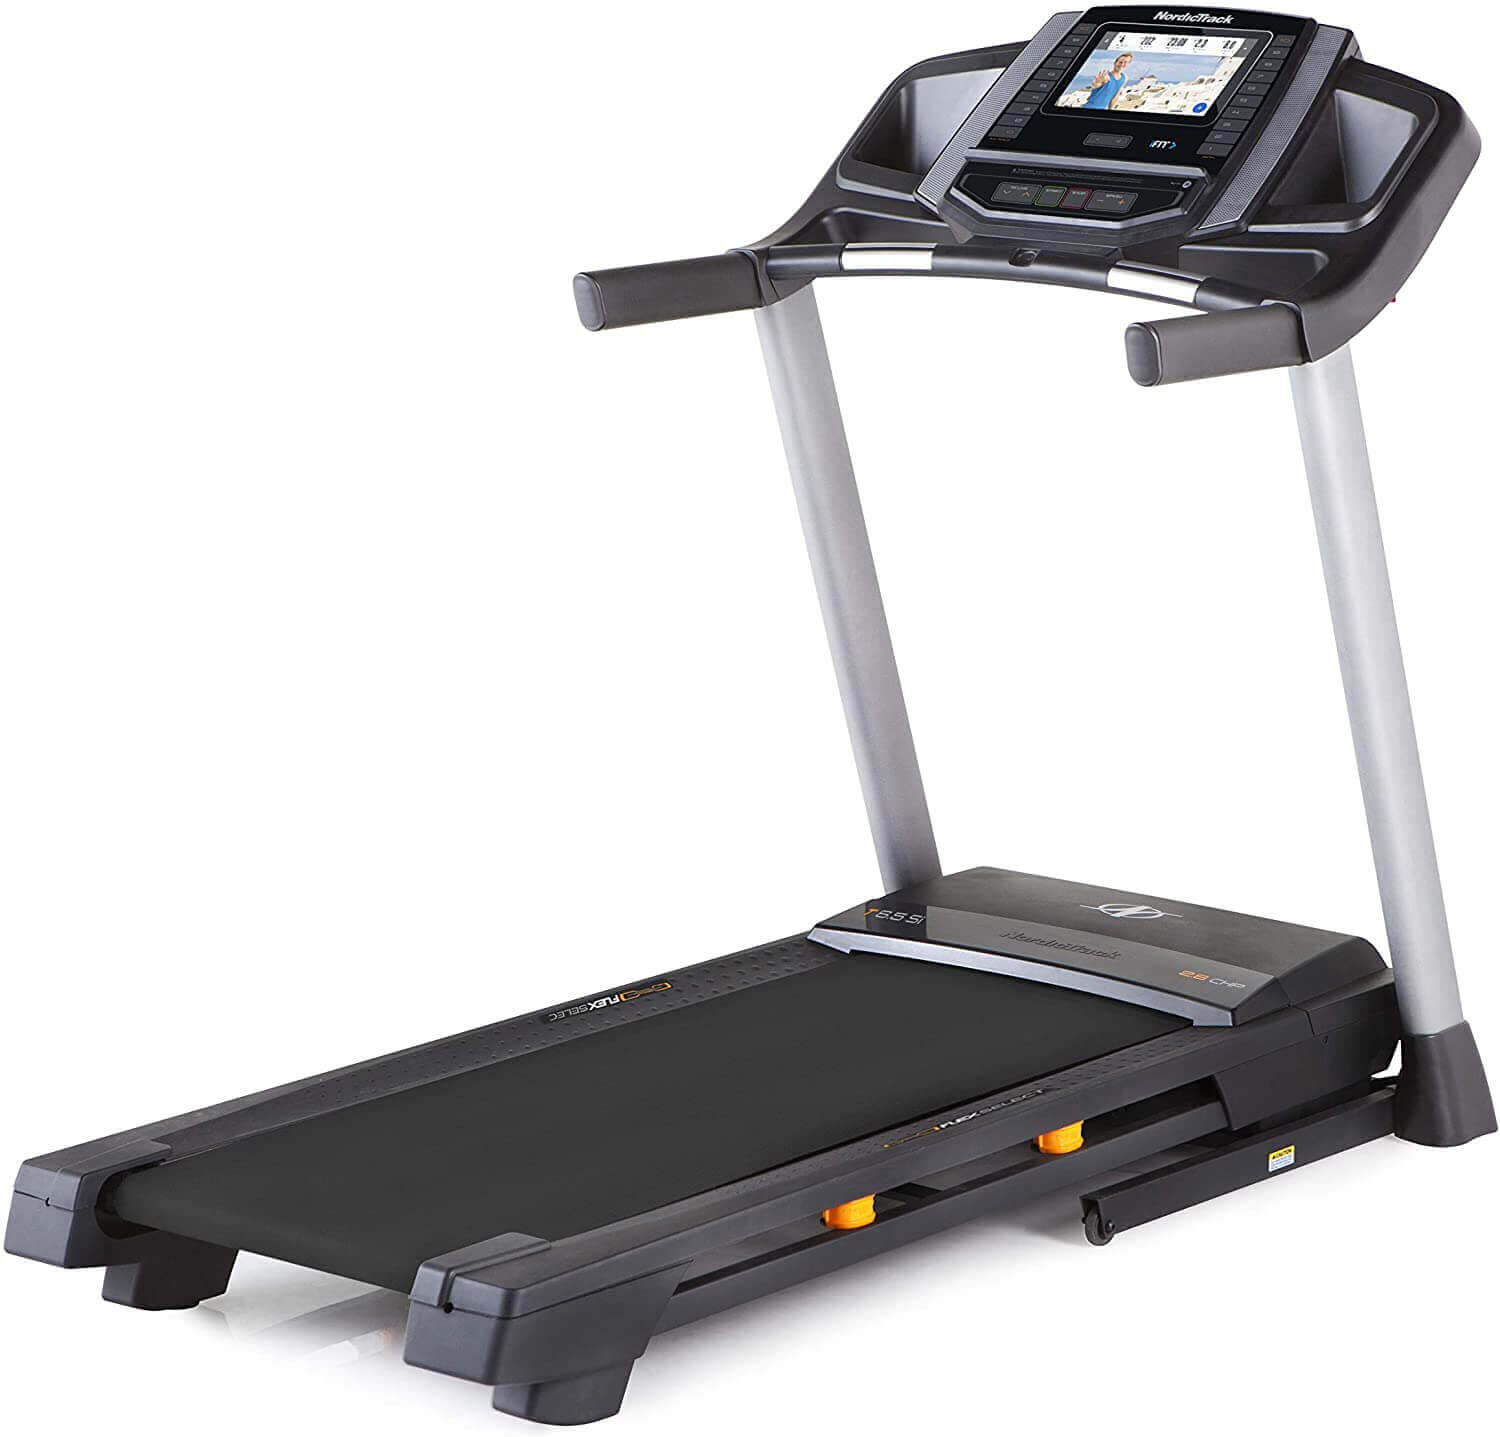 T Series Treadmill - NordicTrack